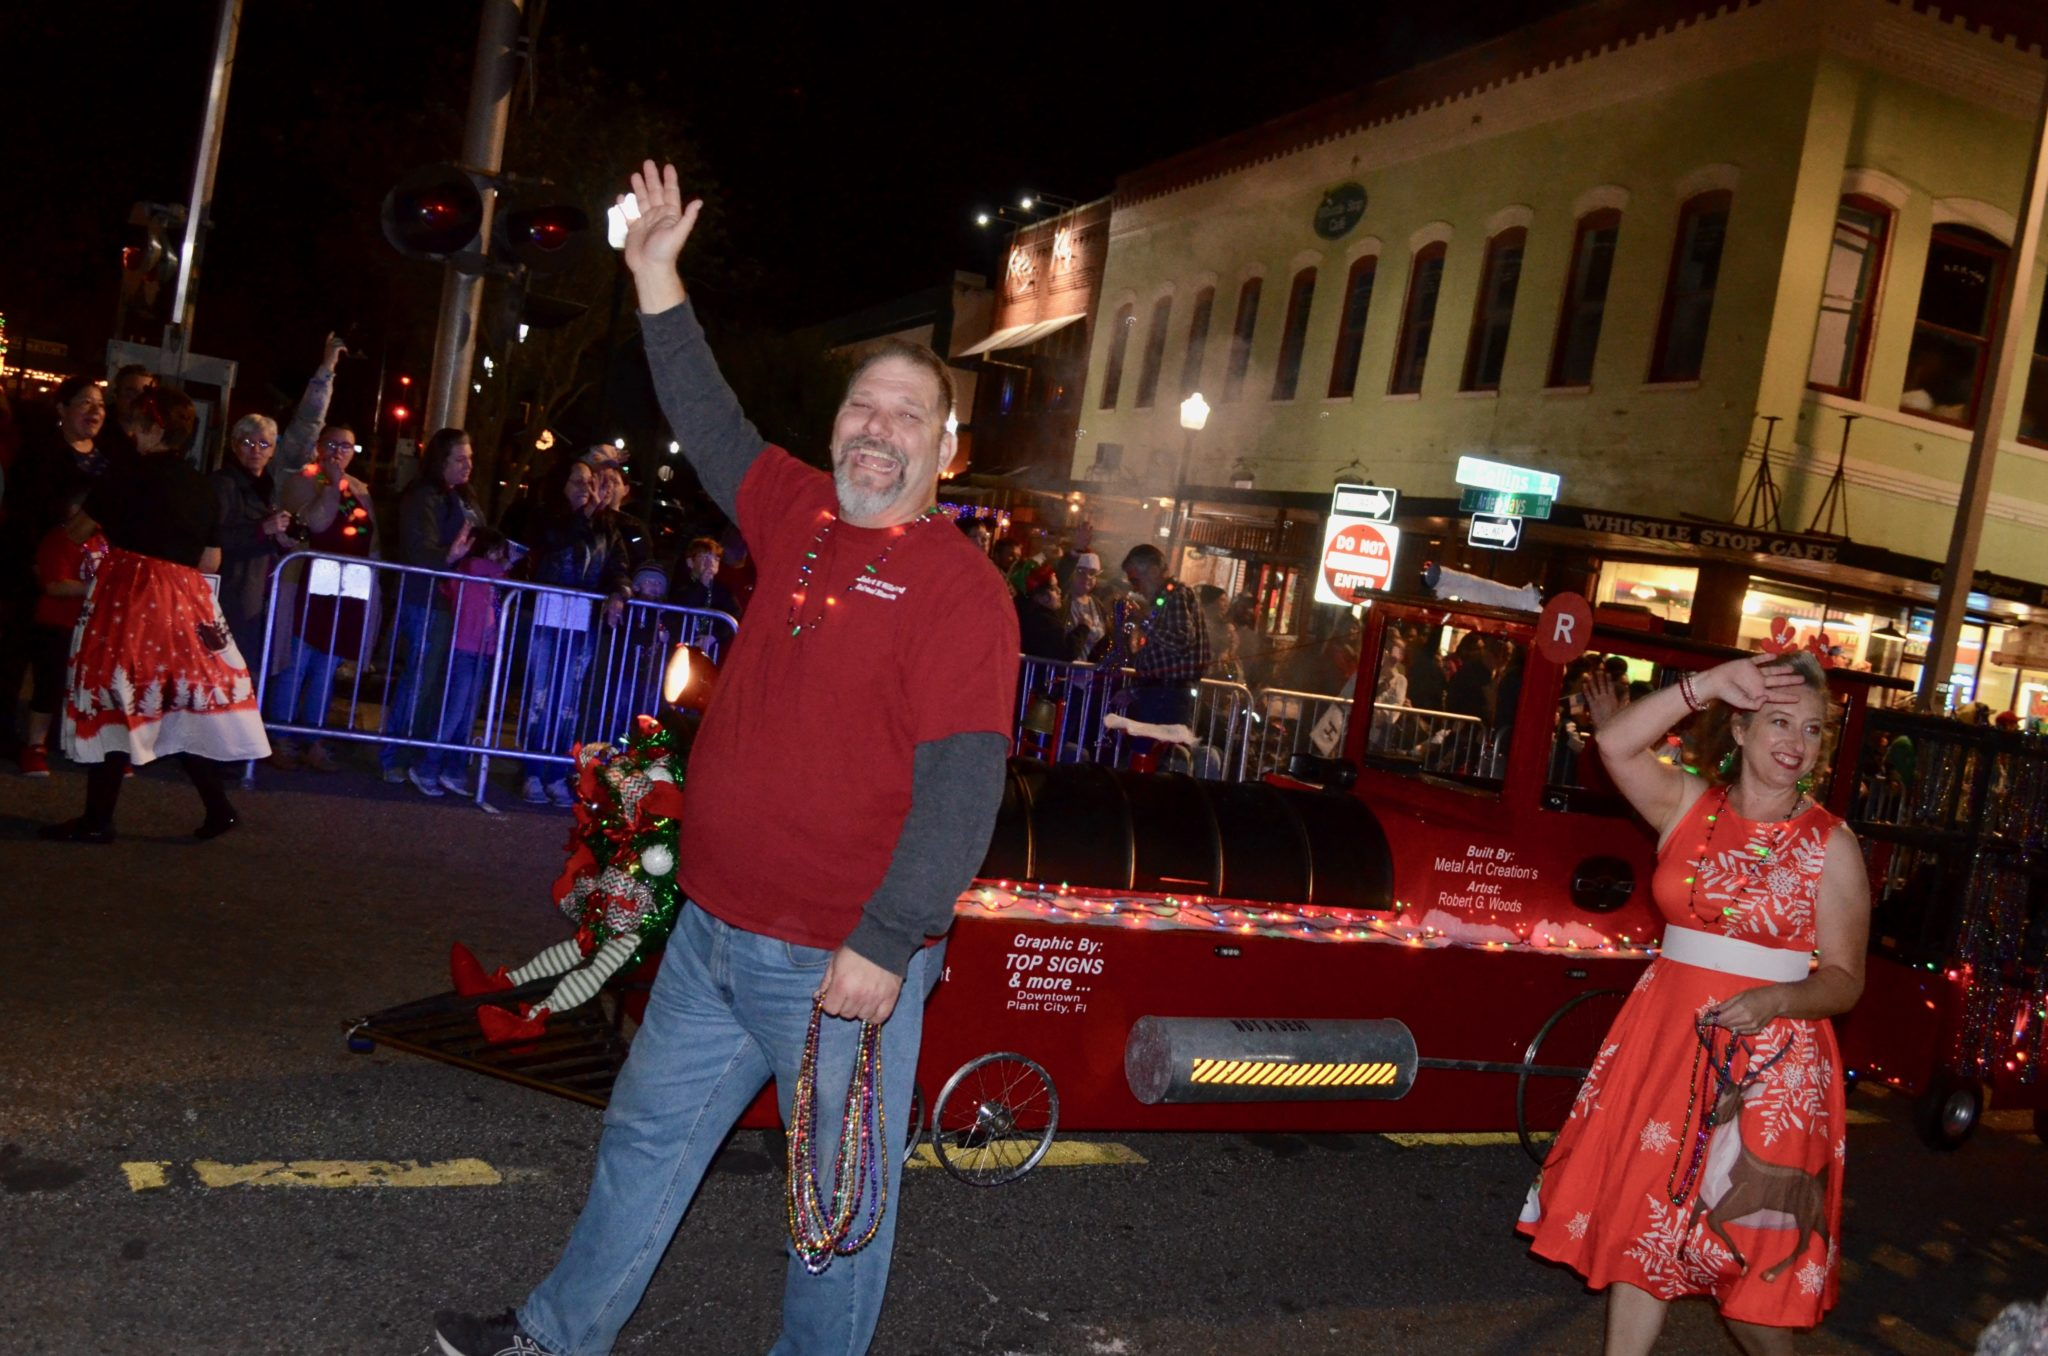 Kenneth City Fl Christmas Parade 2020 Year in Photos: December 2019 | Plant City Observer